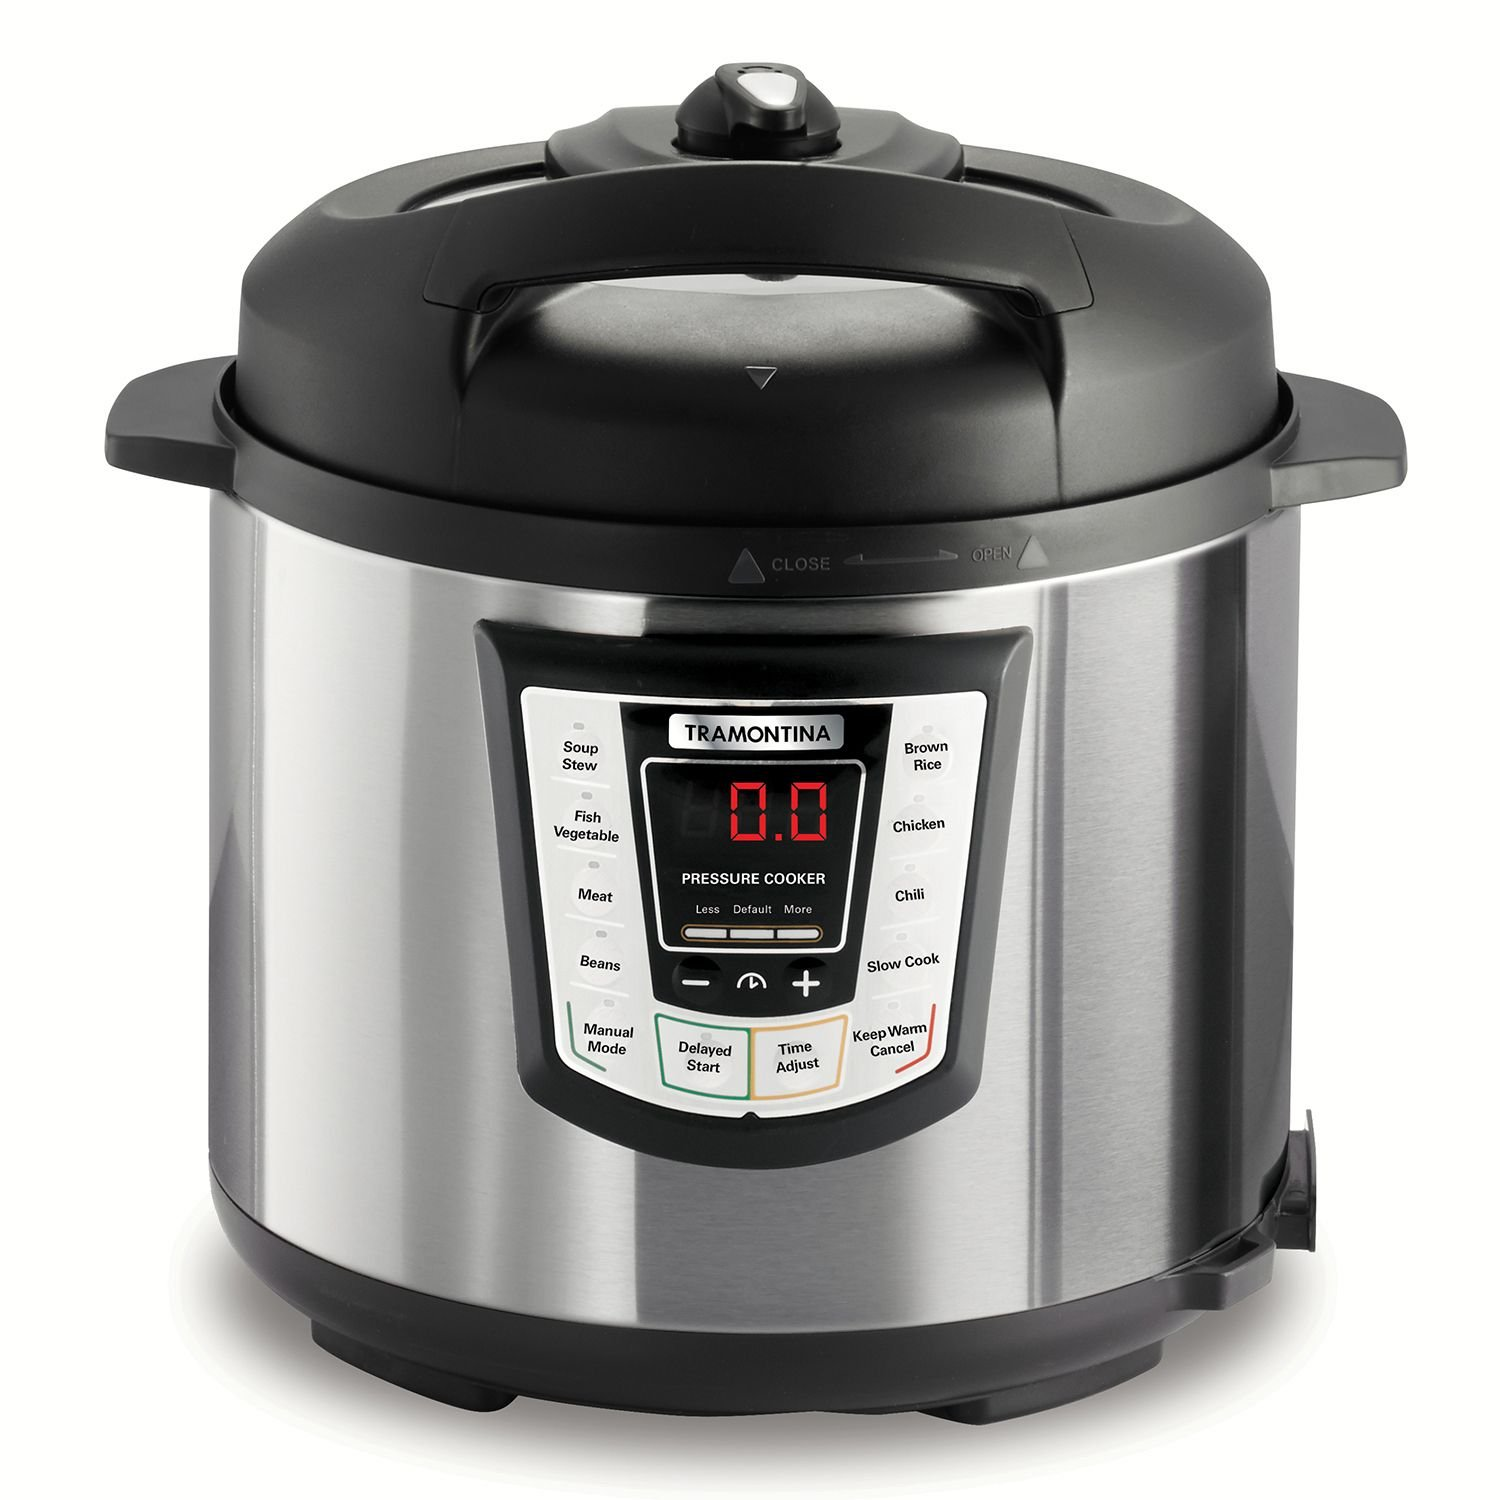 Tramontina 6.3 Qt. Electric Pressure Cooker